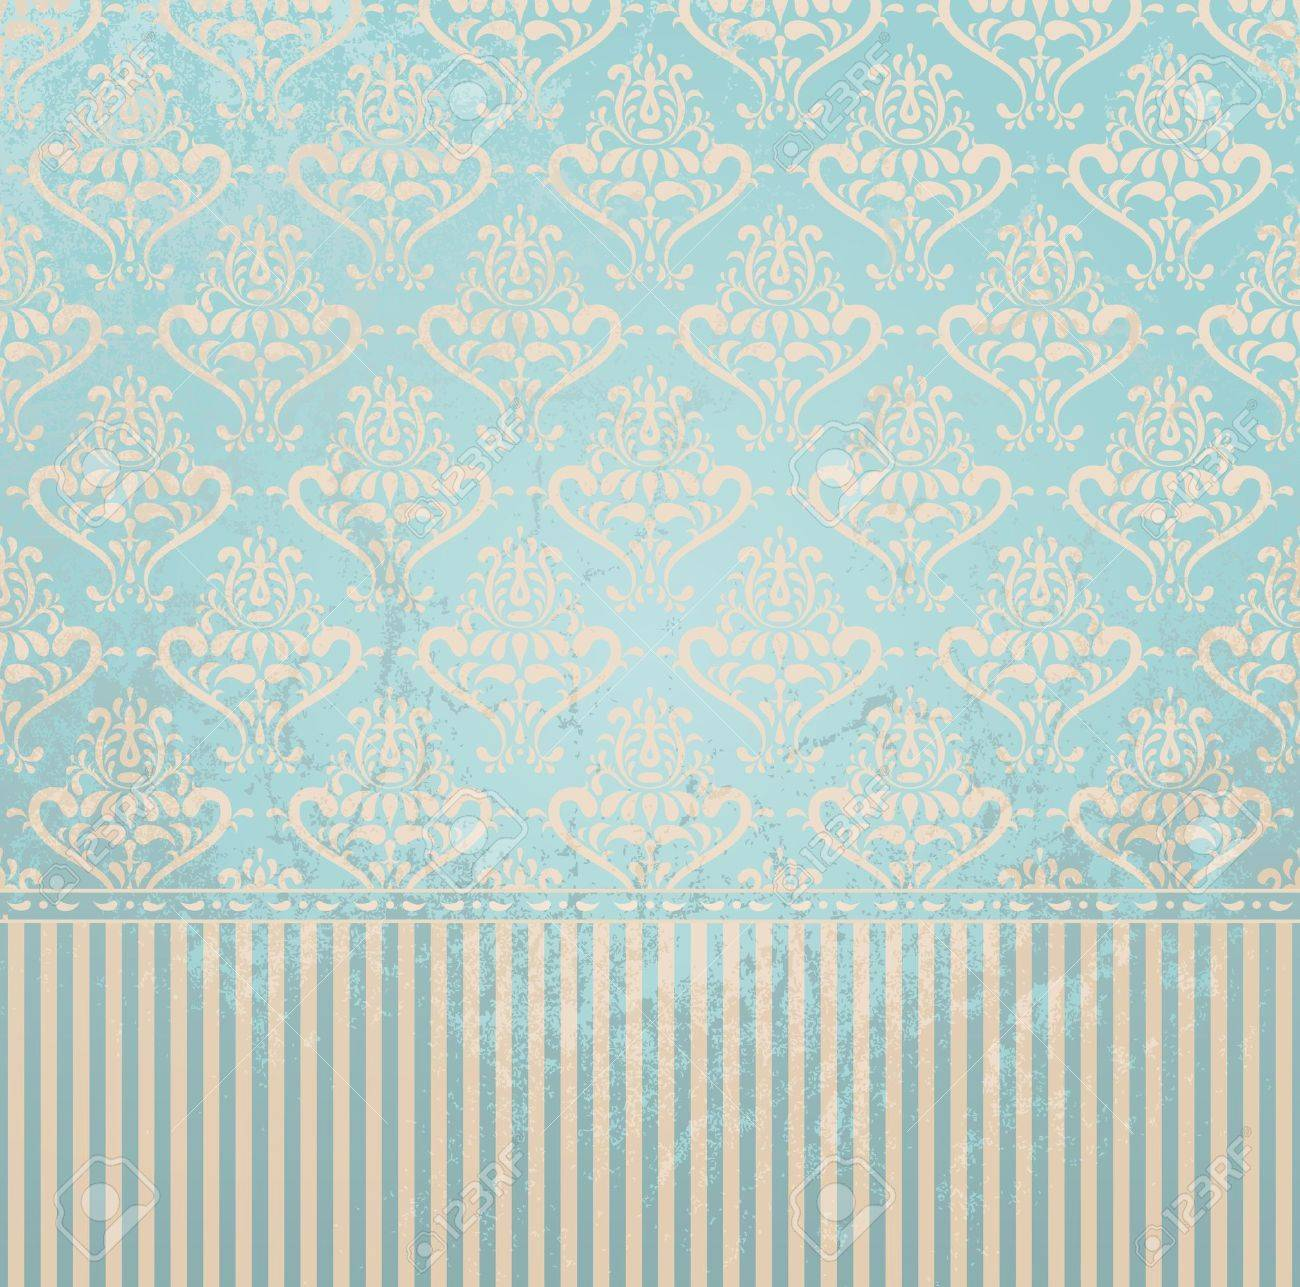 Vintage wallpaper in grunge style  Grunge effect can be removed  EPS 8 vector illustration Stock Vector - 12429337